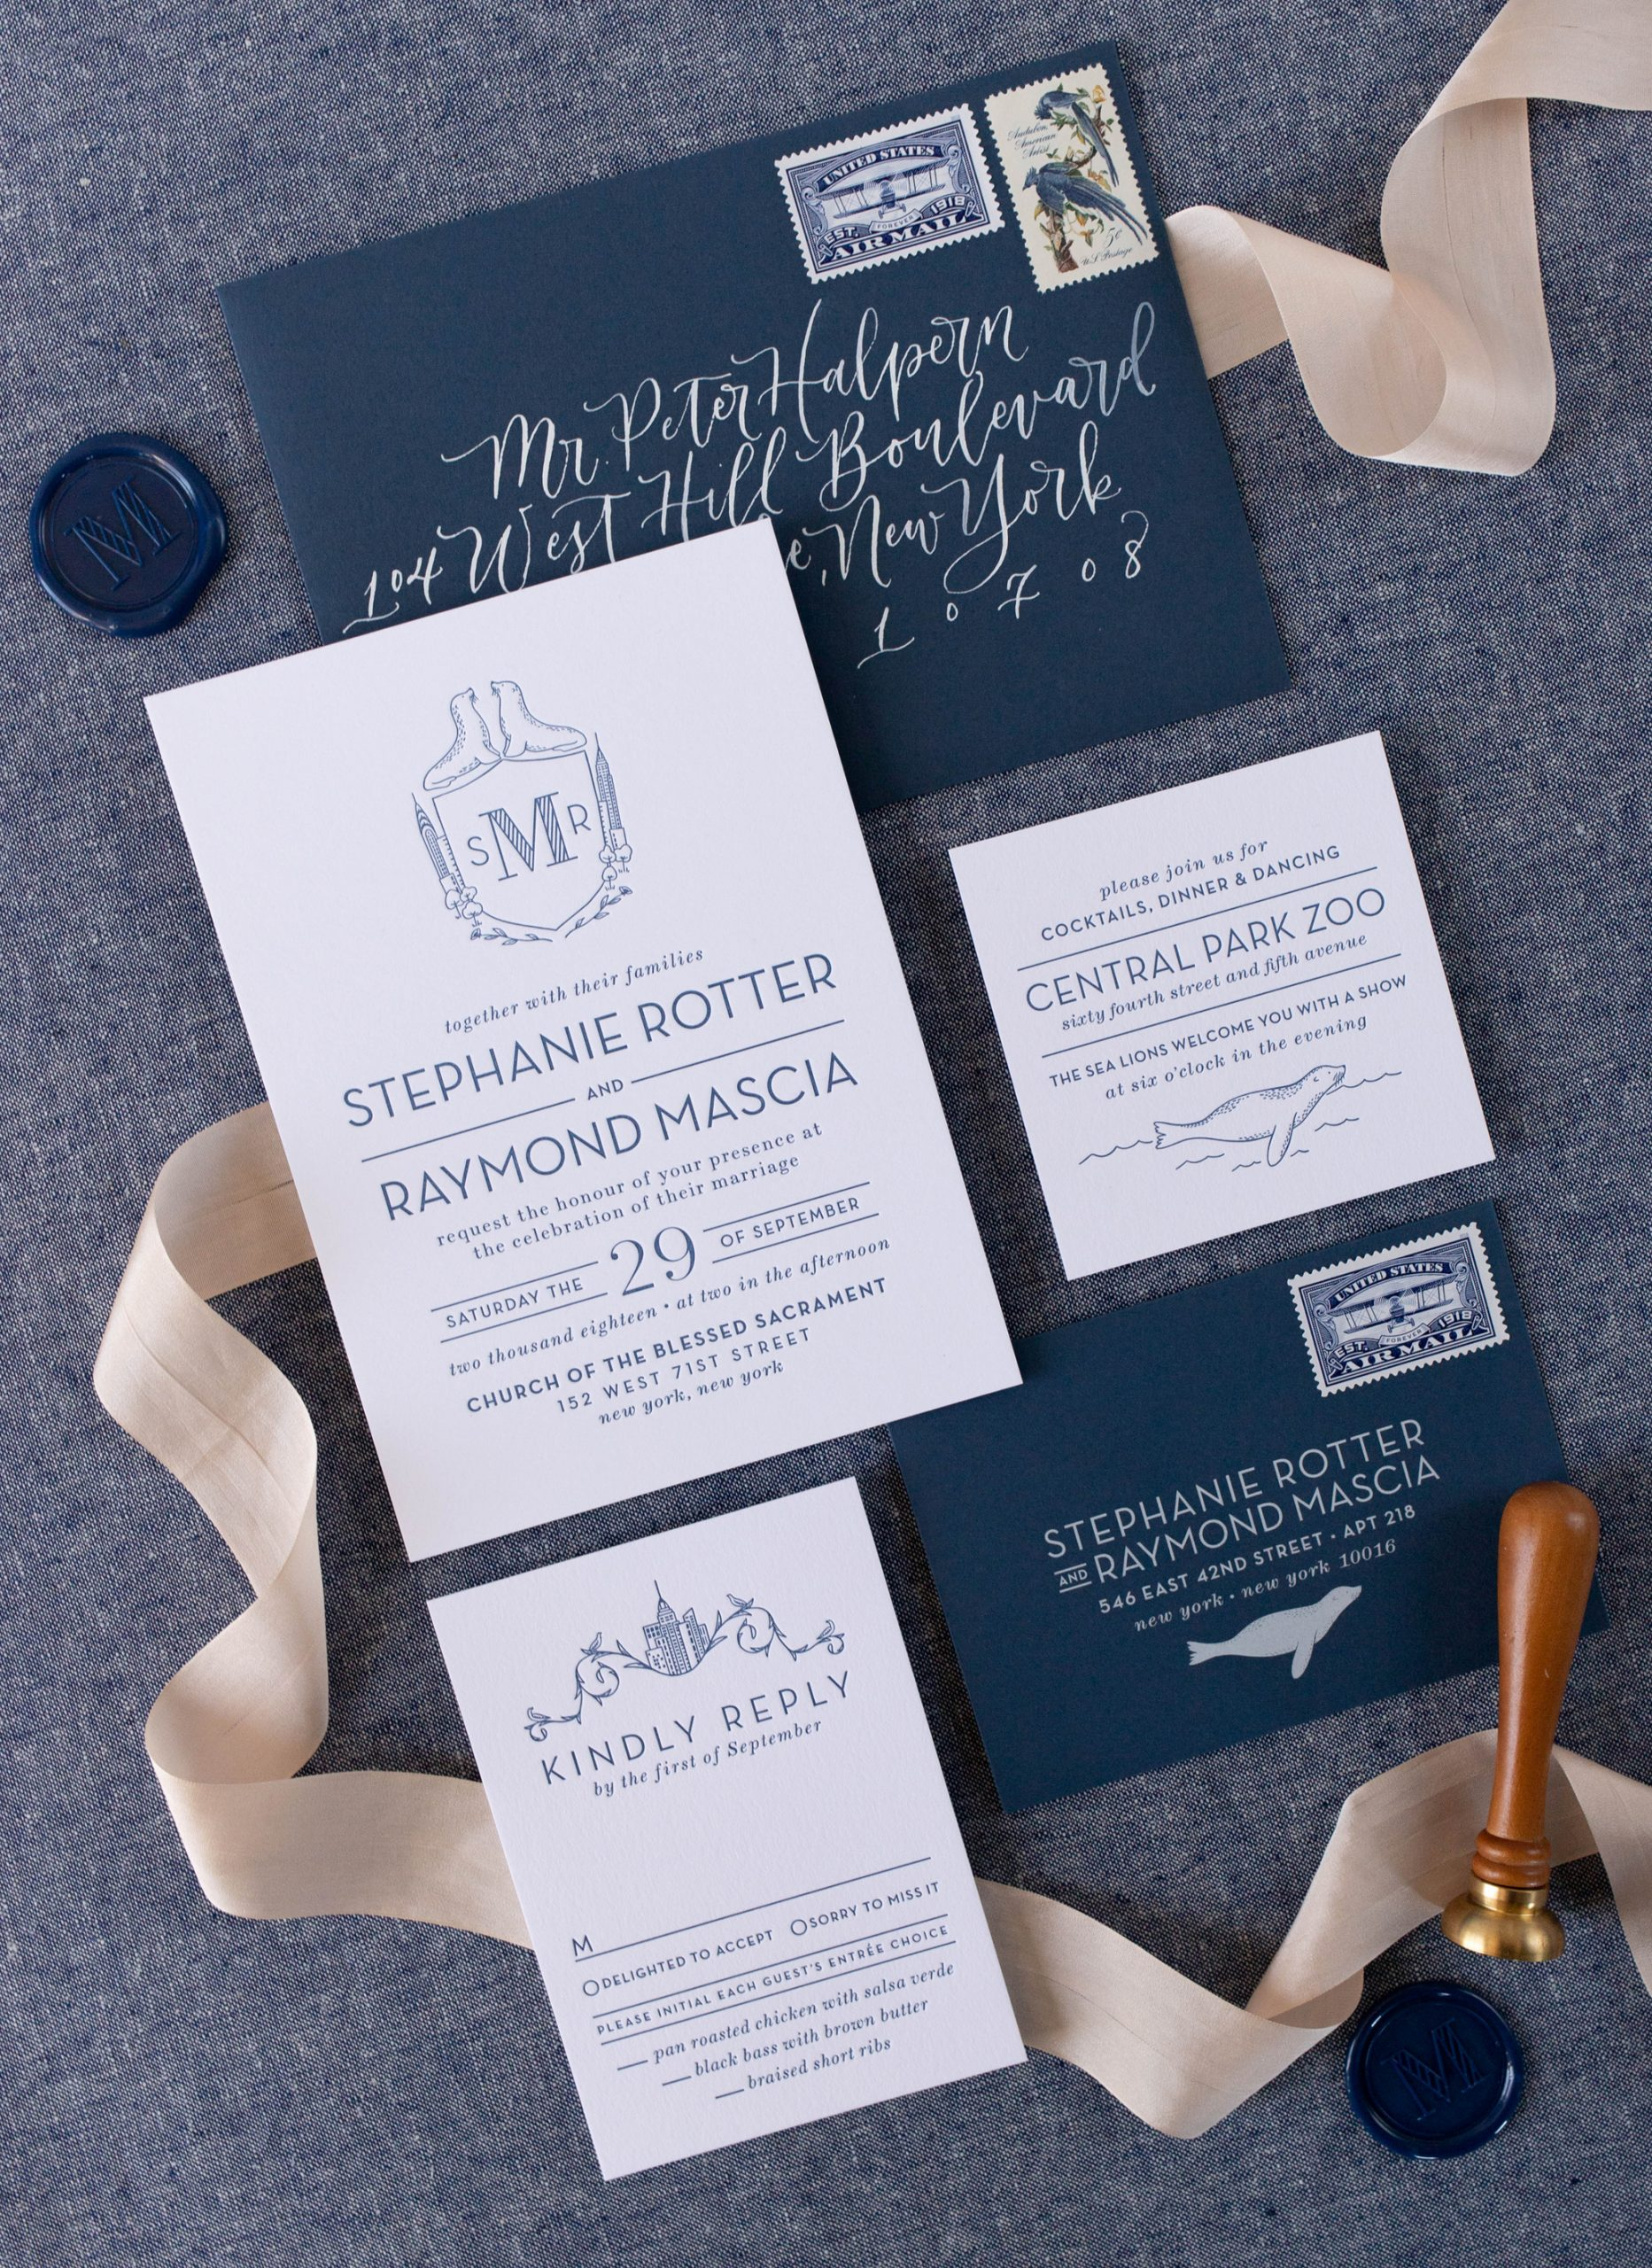 custom wedding invitations letterpress nyc Central Park with custom illustrations and map